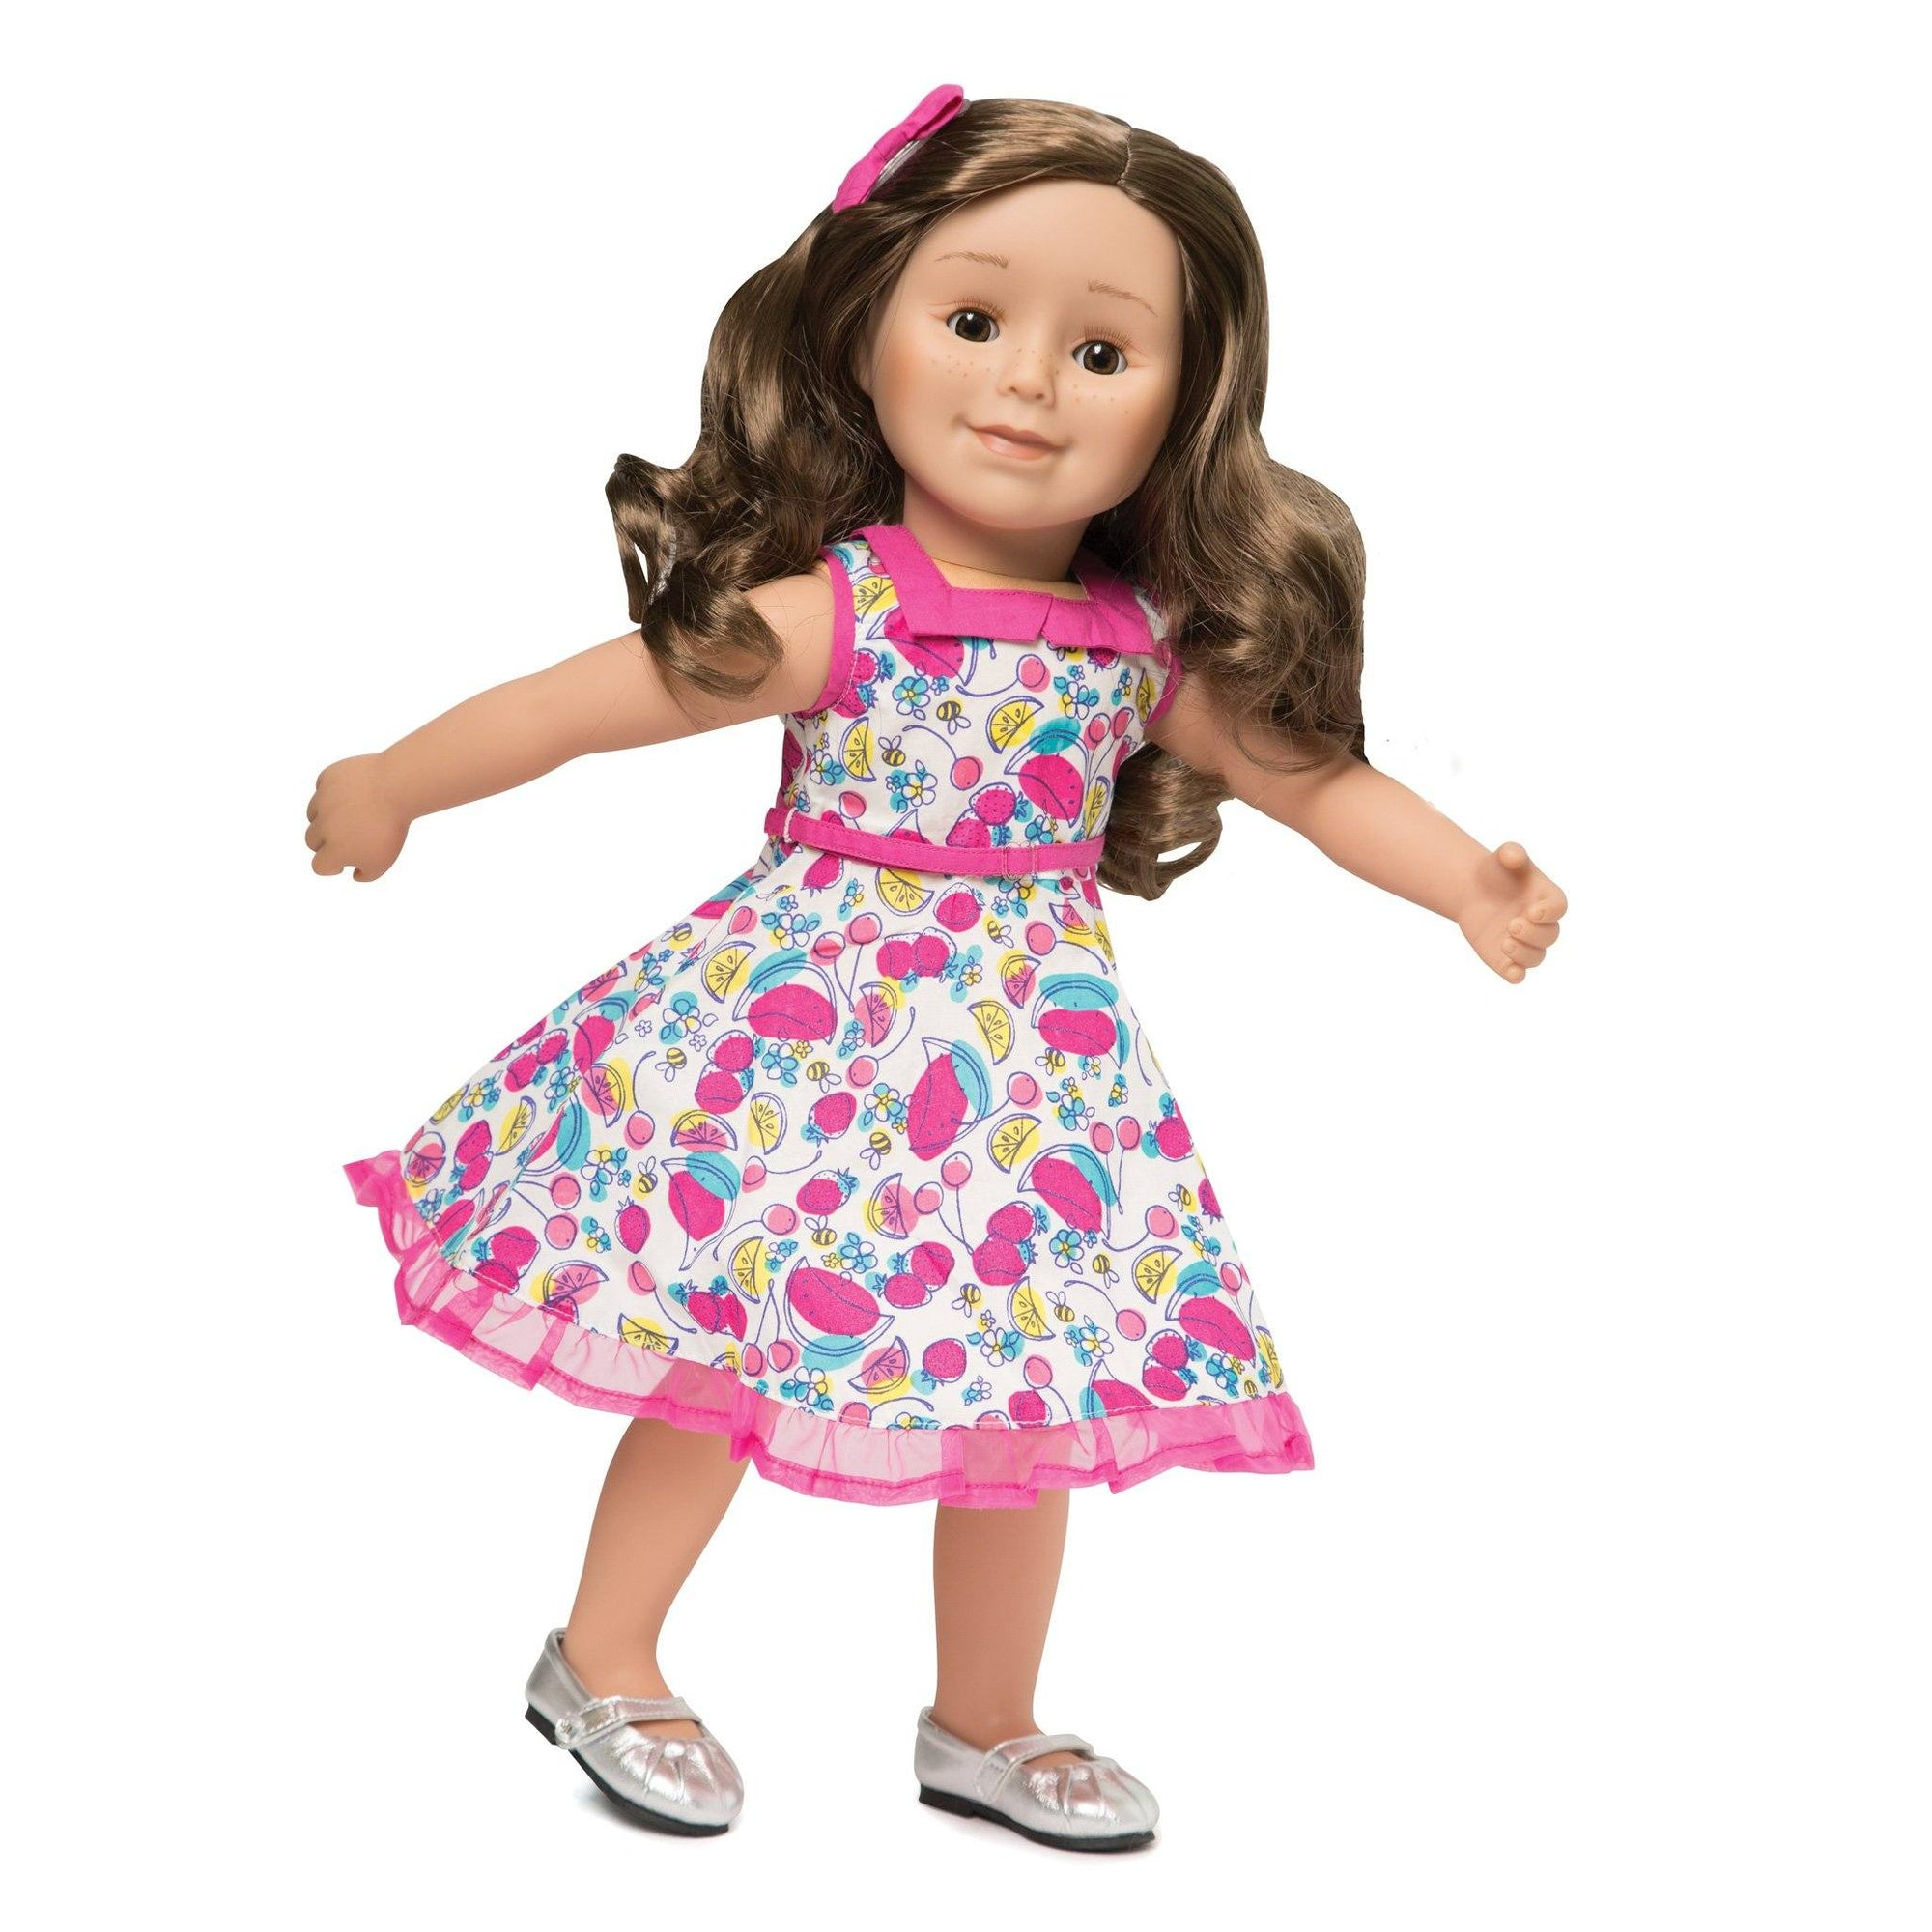 Standing Ovation white 50's inspired dress with multi-colour fruit print and pink accents and pink hair bow fits all 18 inch dolls.